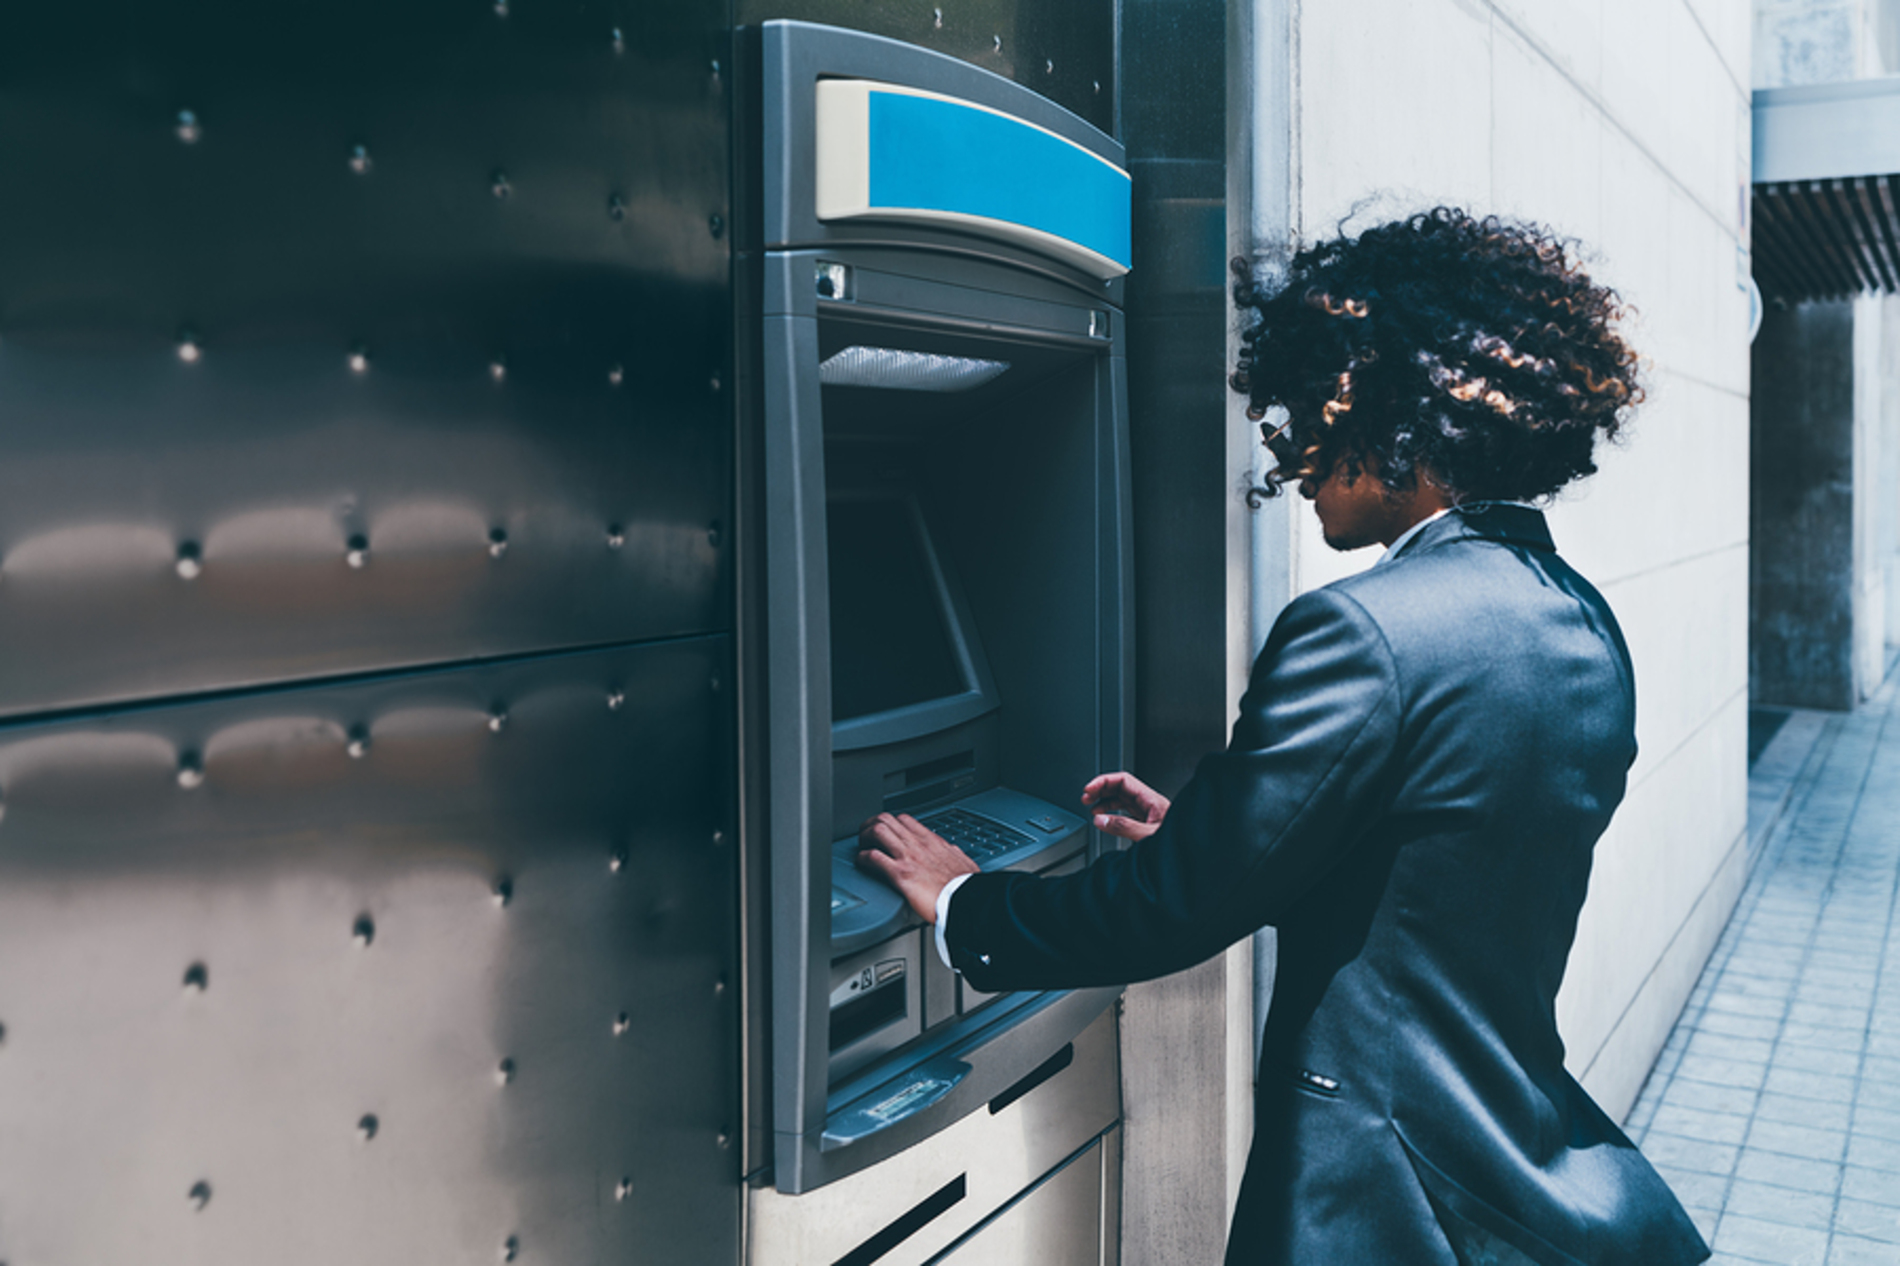 Woman operating an ATM.